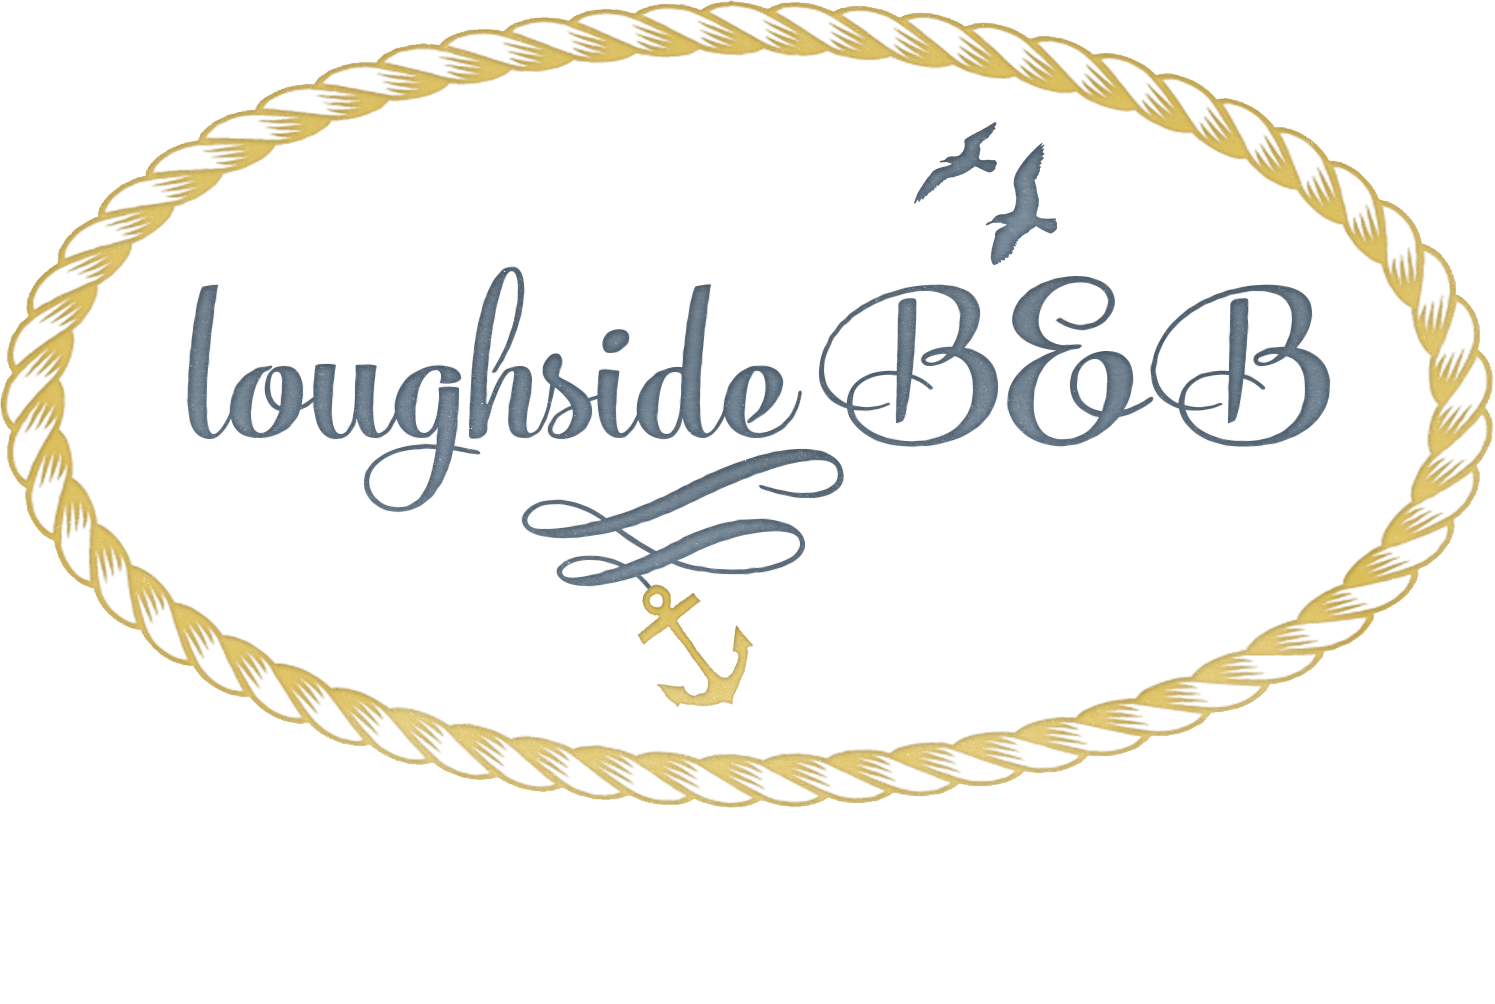 Loughside B&B